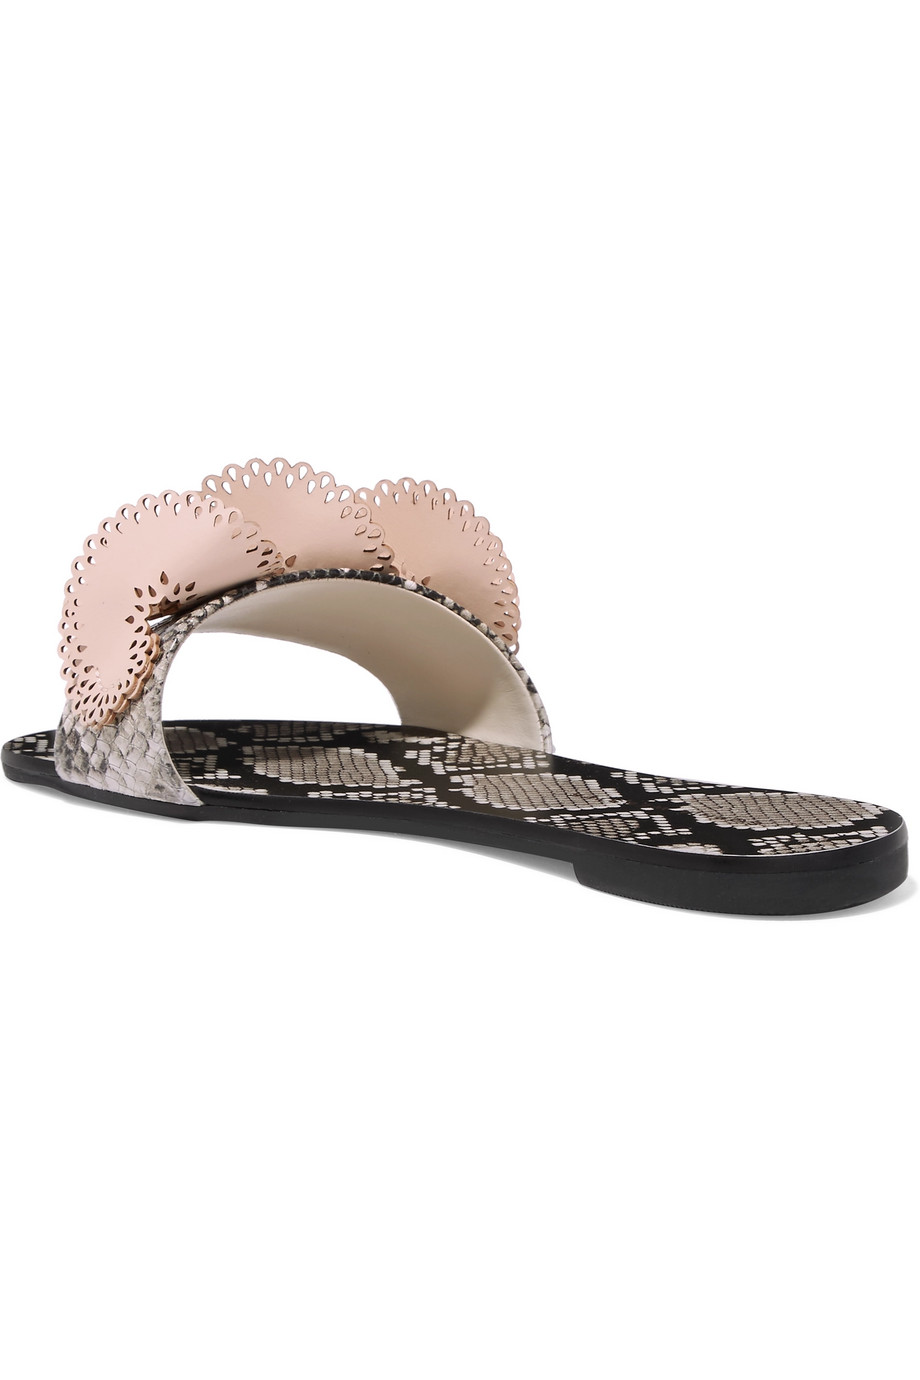 Leather slippers Sophia Webster buy Leather slippers Sophia Webster internet shop